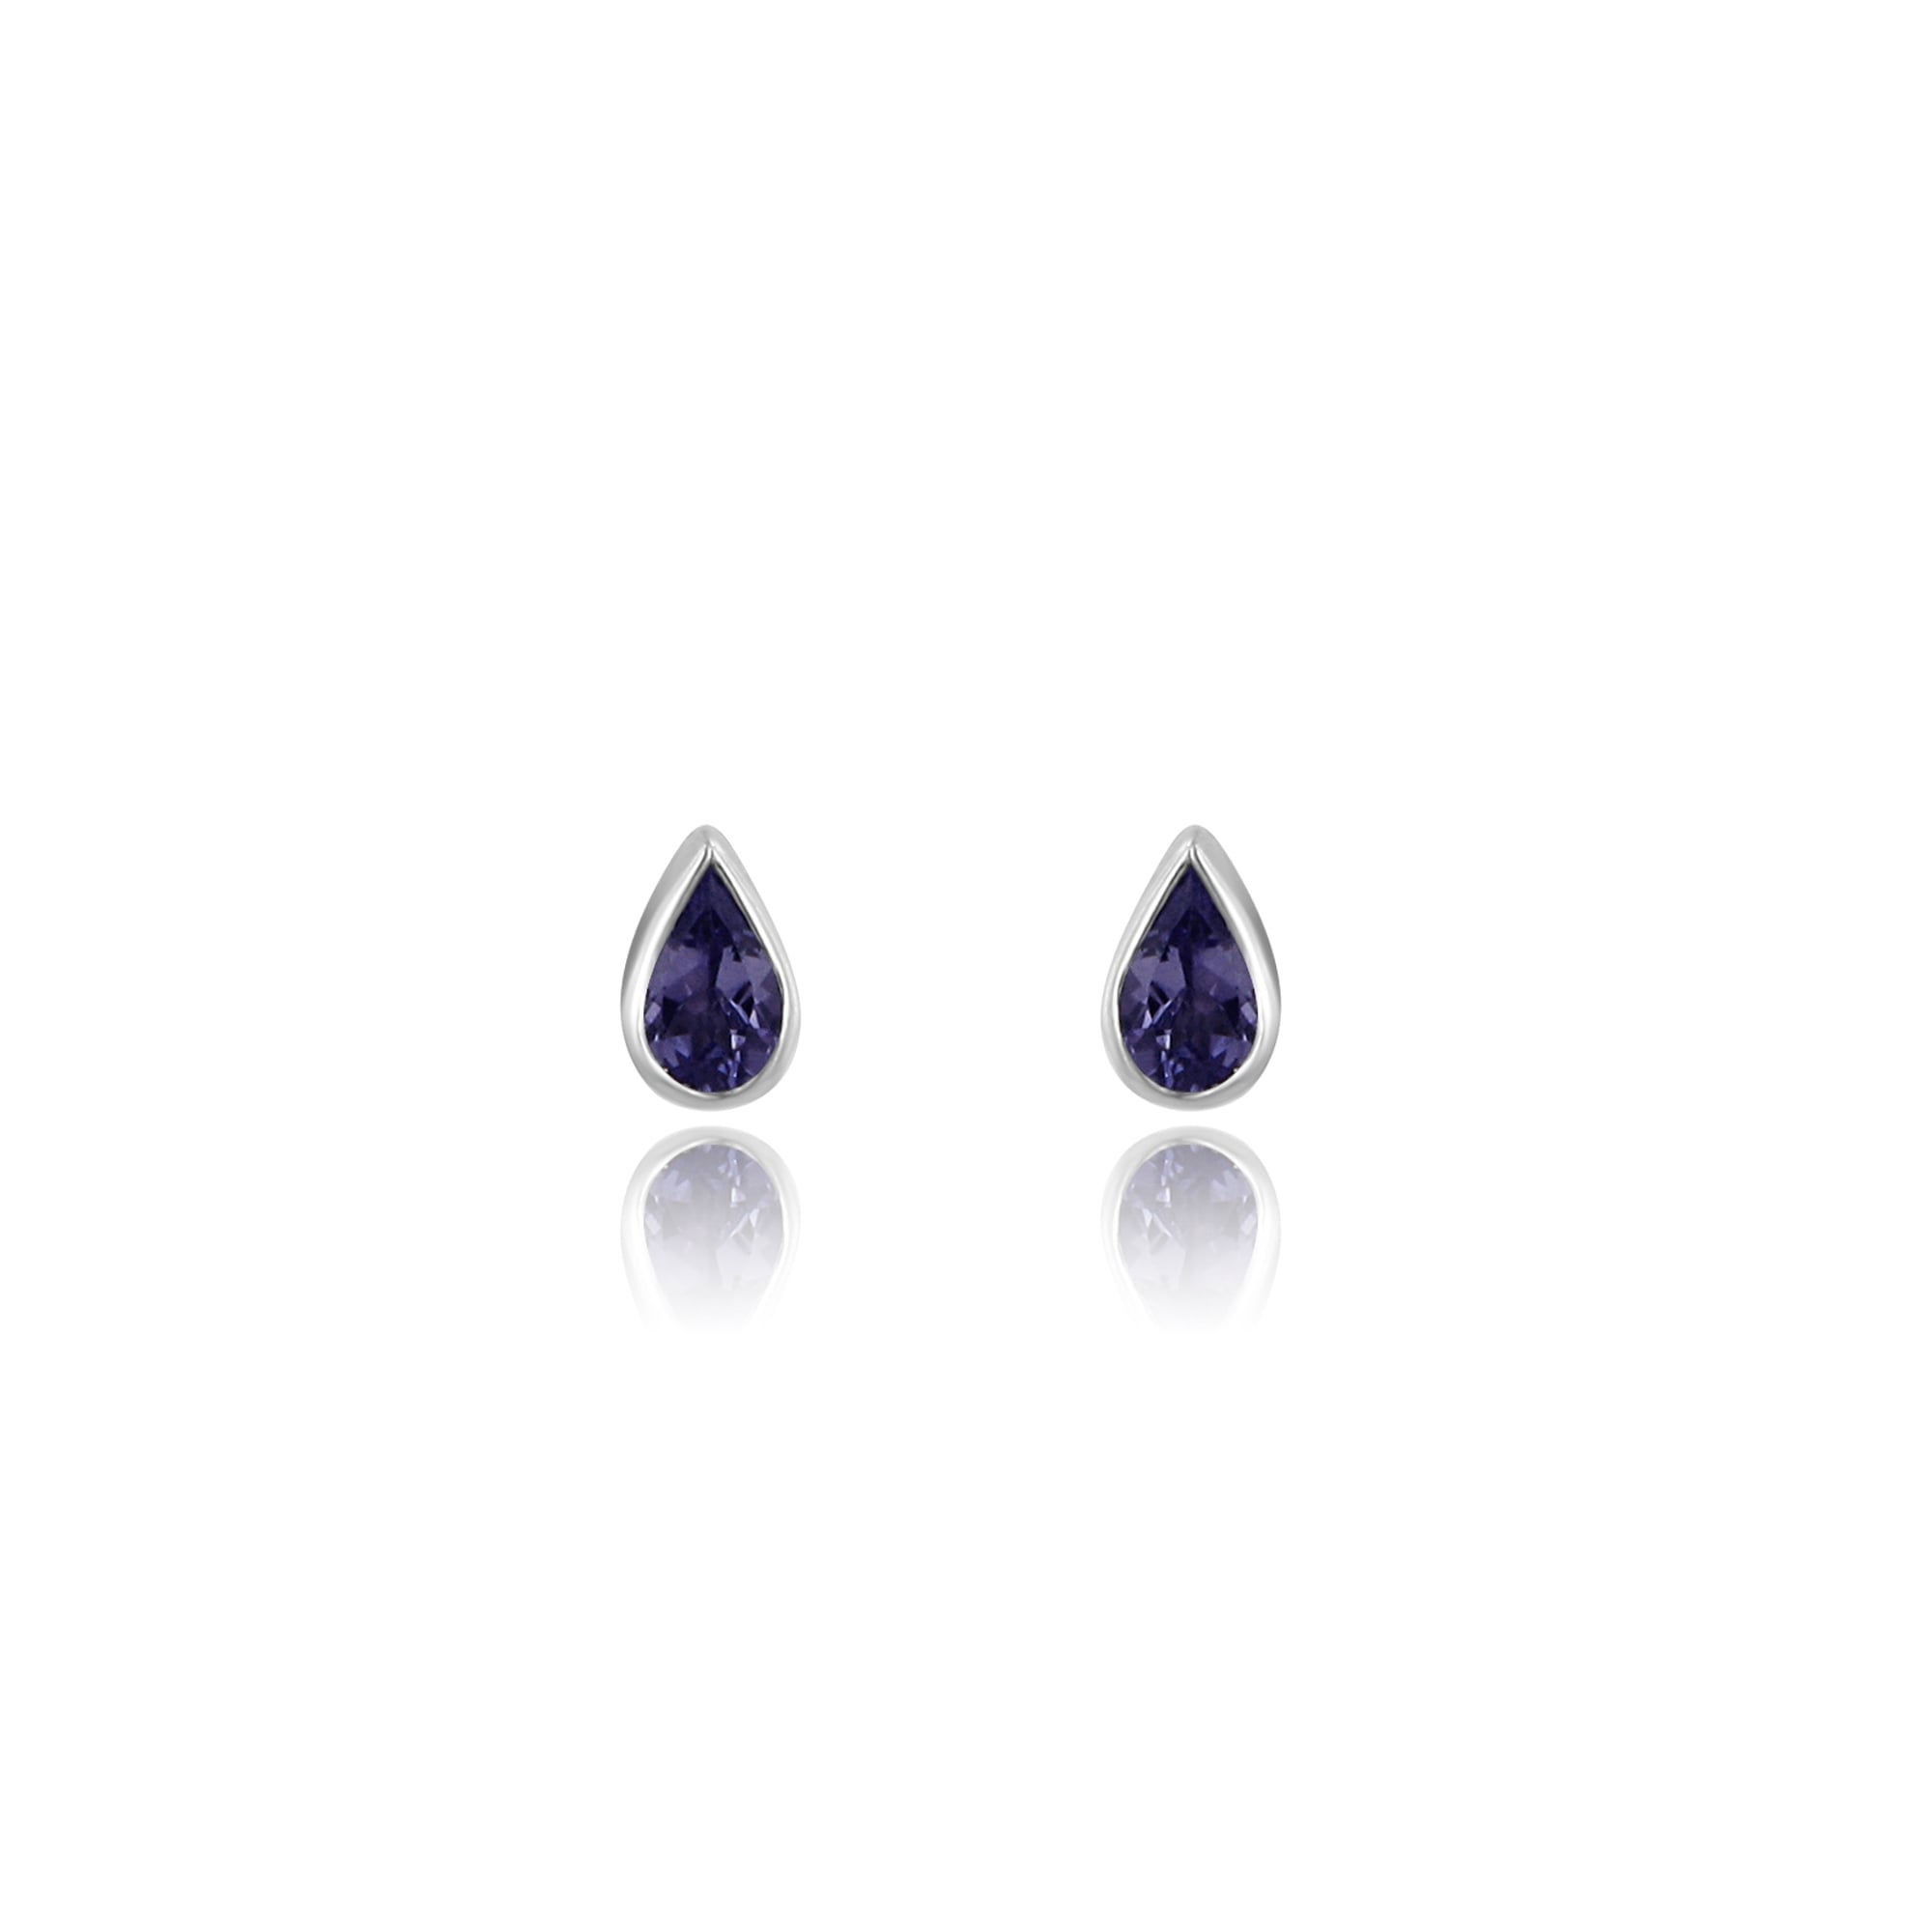 t for earring at big black diamonds the article in tanzanite top jck w with sutra sapphire ct earrings cts gold also editorial and fall trend go